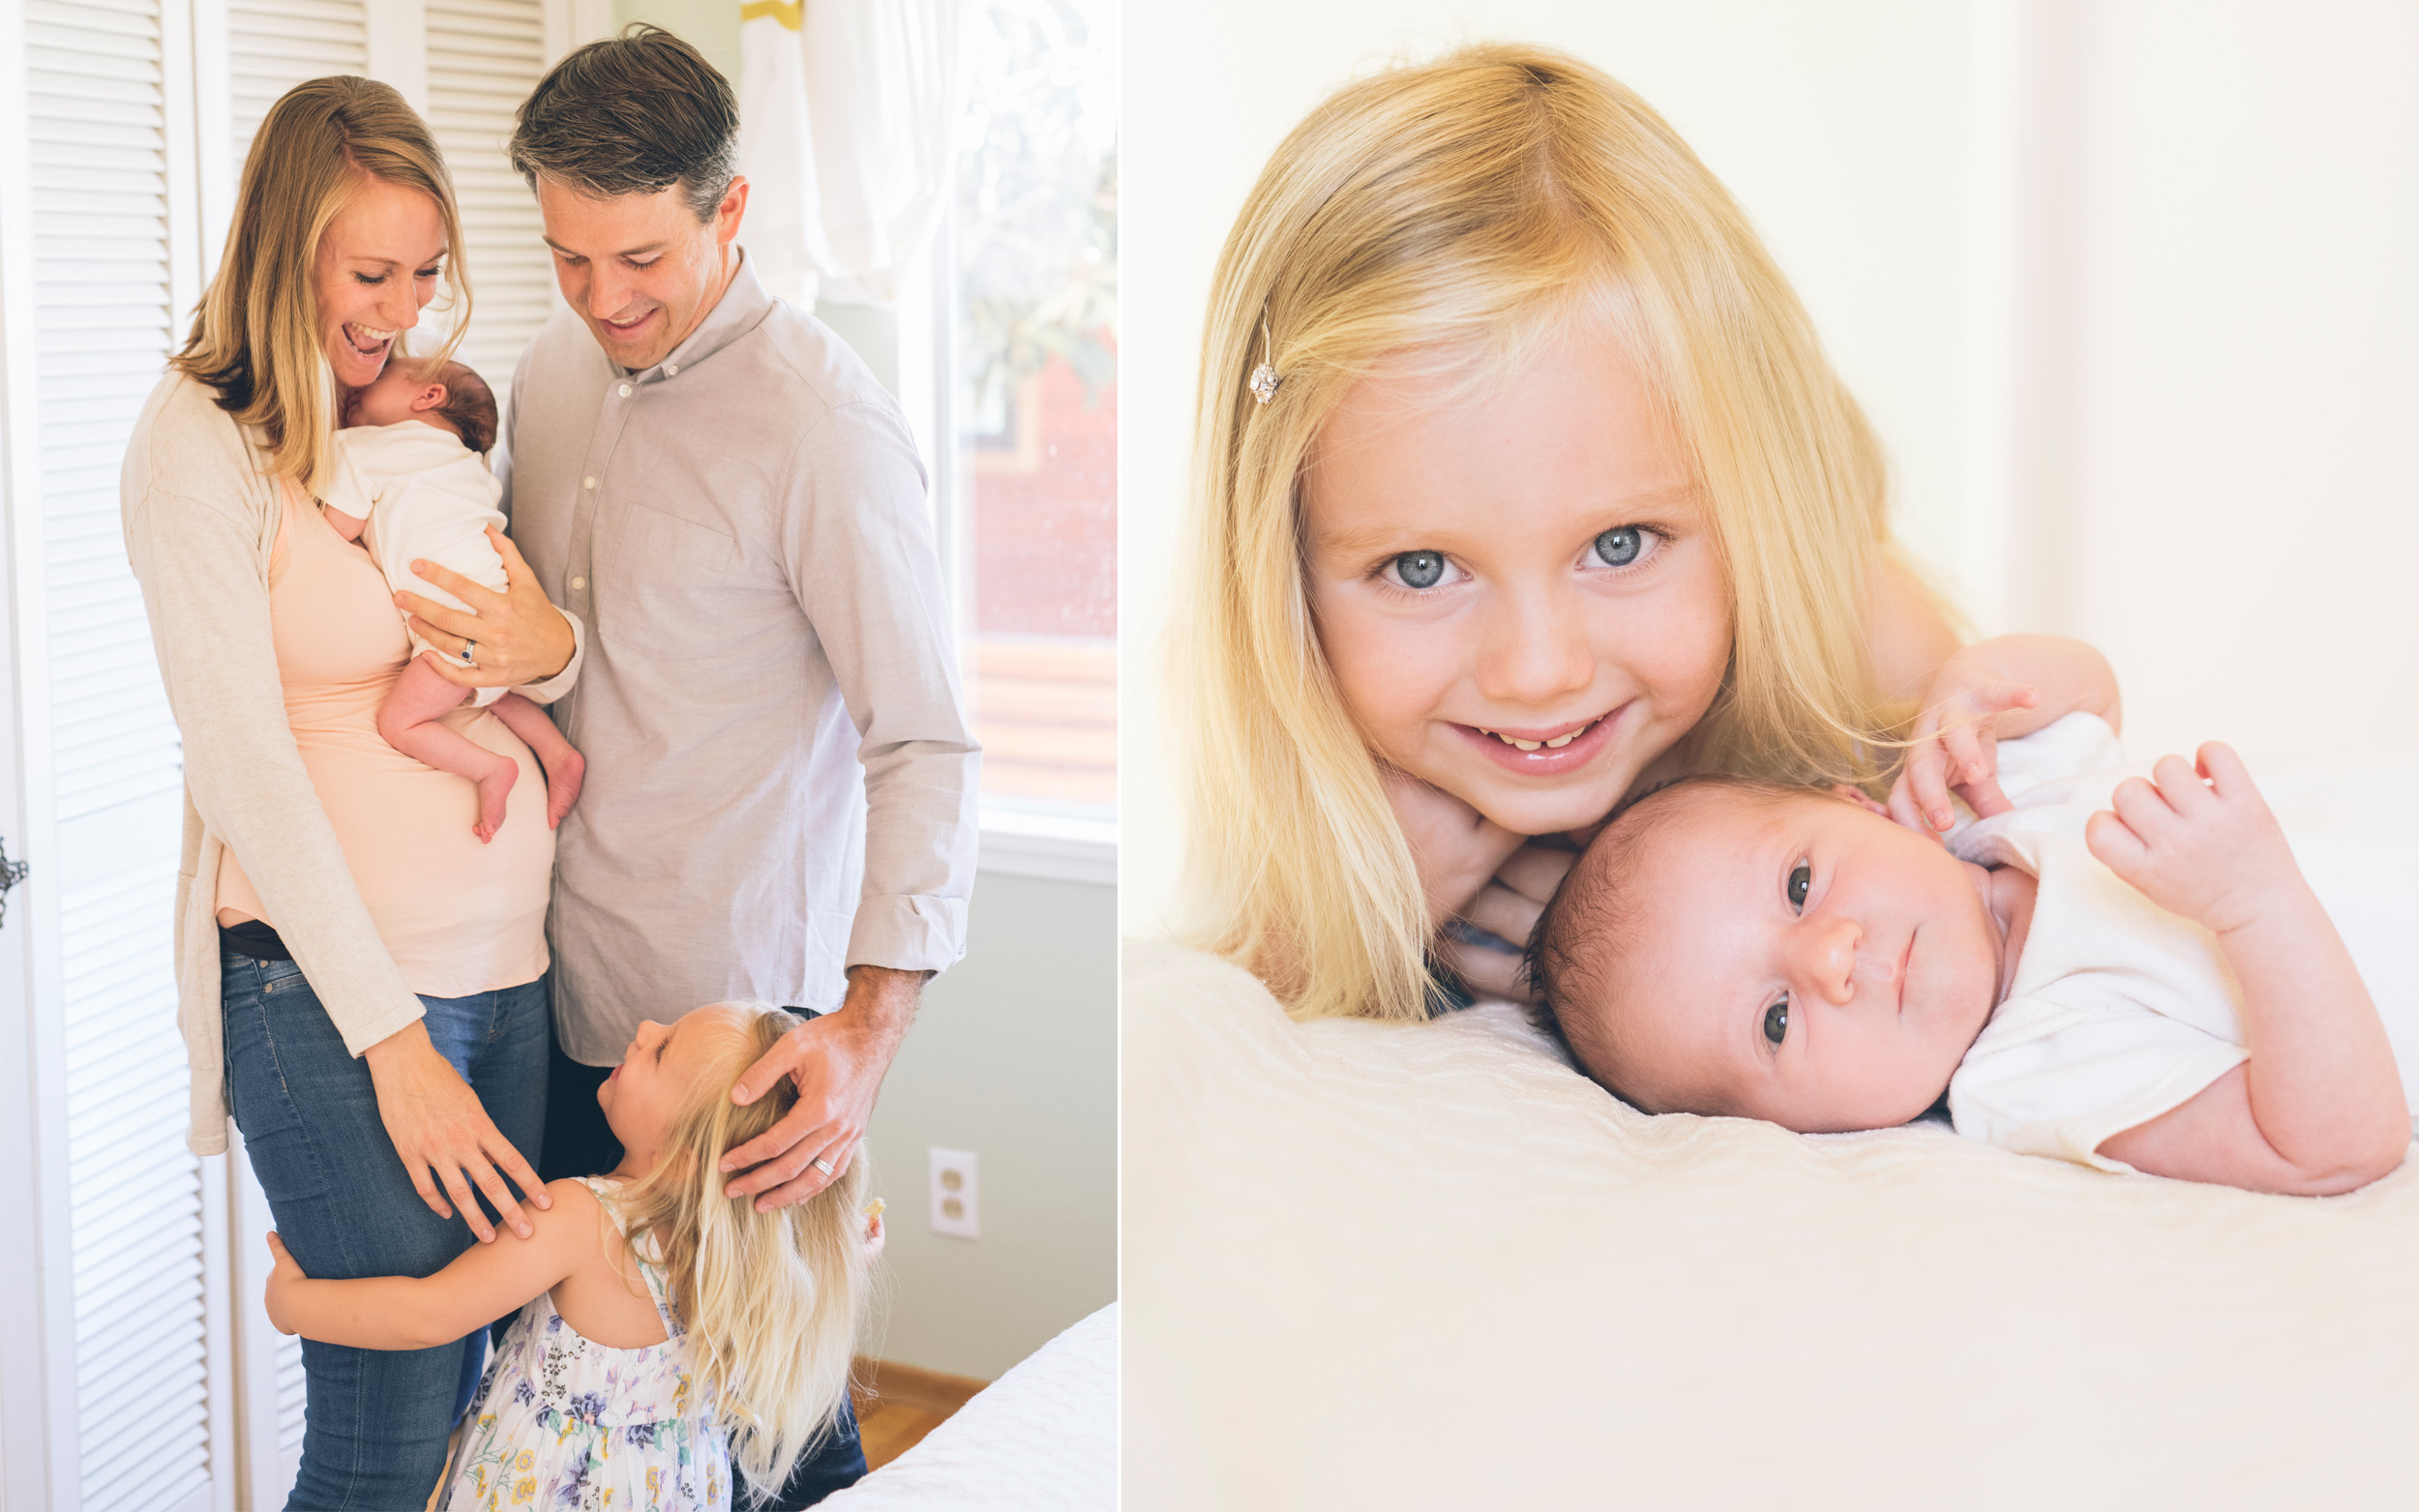 portraits-from-a-newborn-family-session-in-the-bay-area.jpg